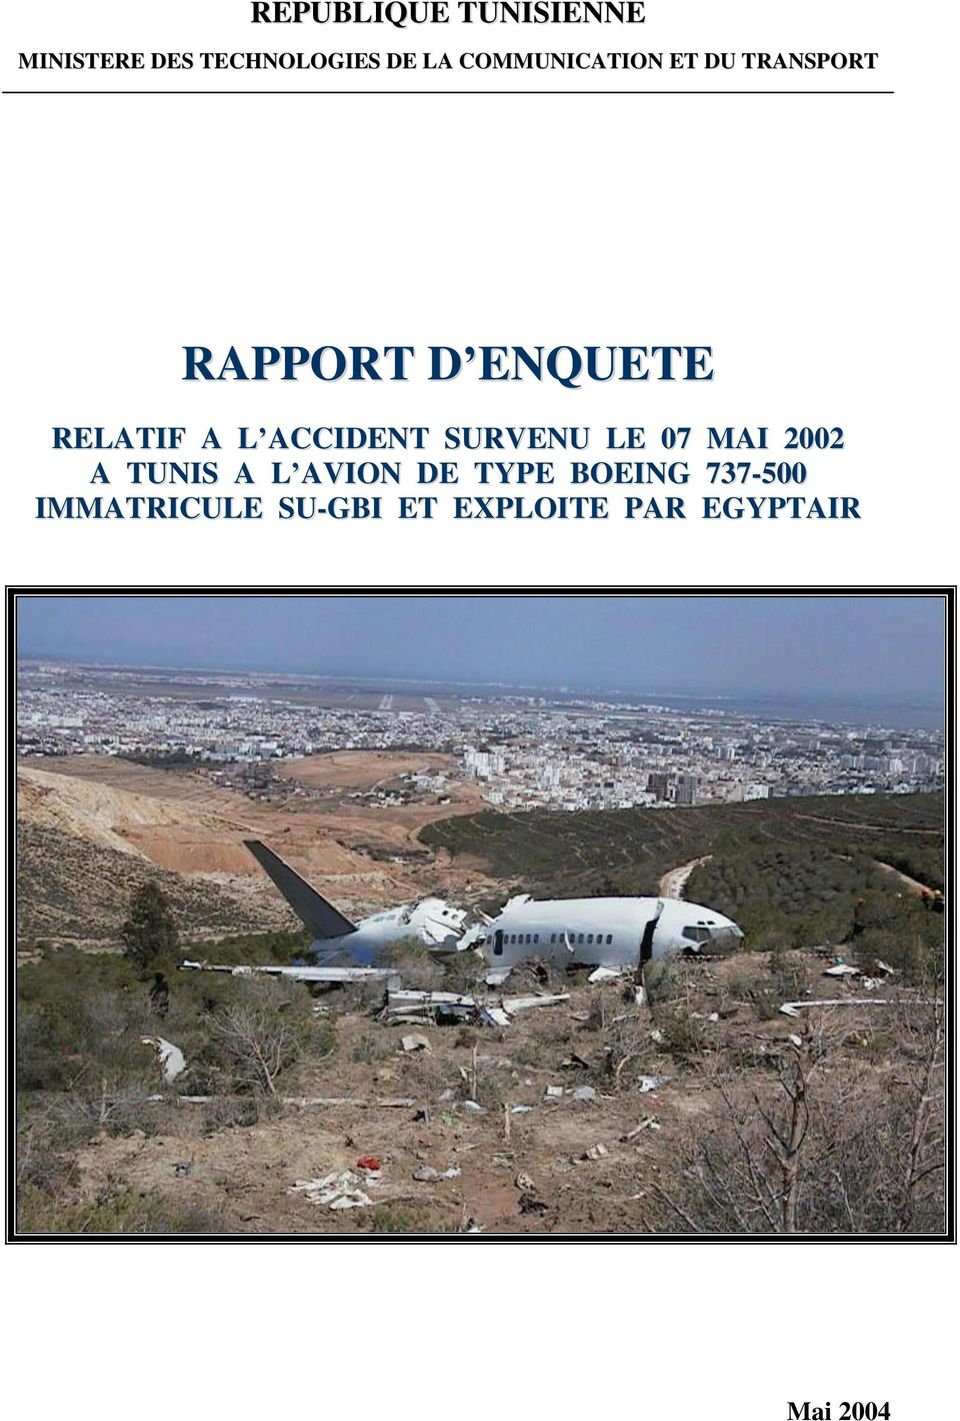 ACCIDENT SURVENU LE 07 MAI 2002 A TUNIS A L AVION DE TYPE